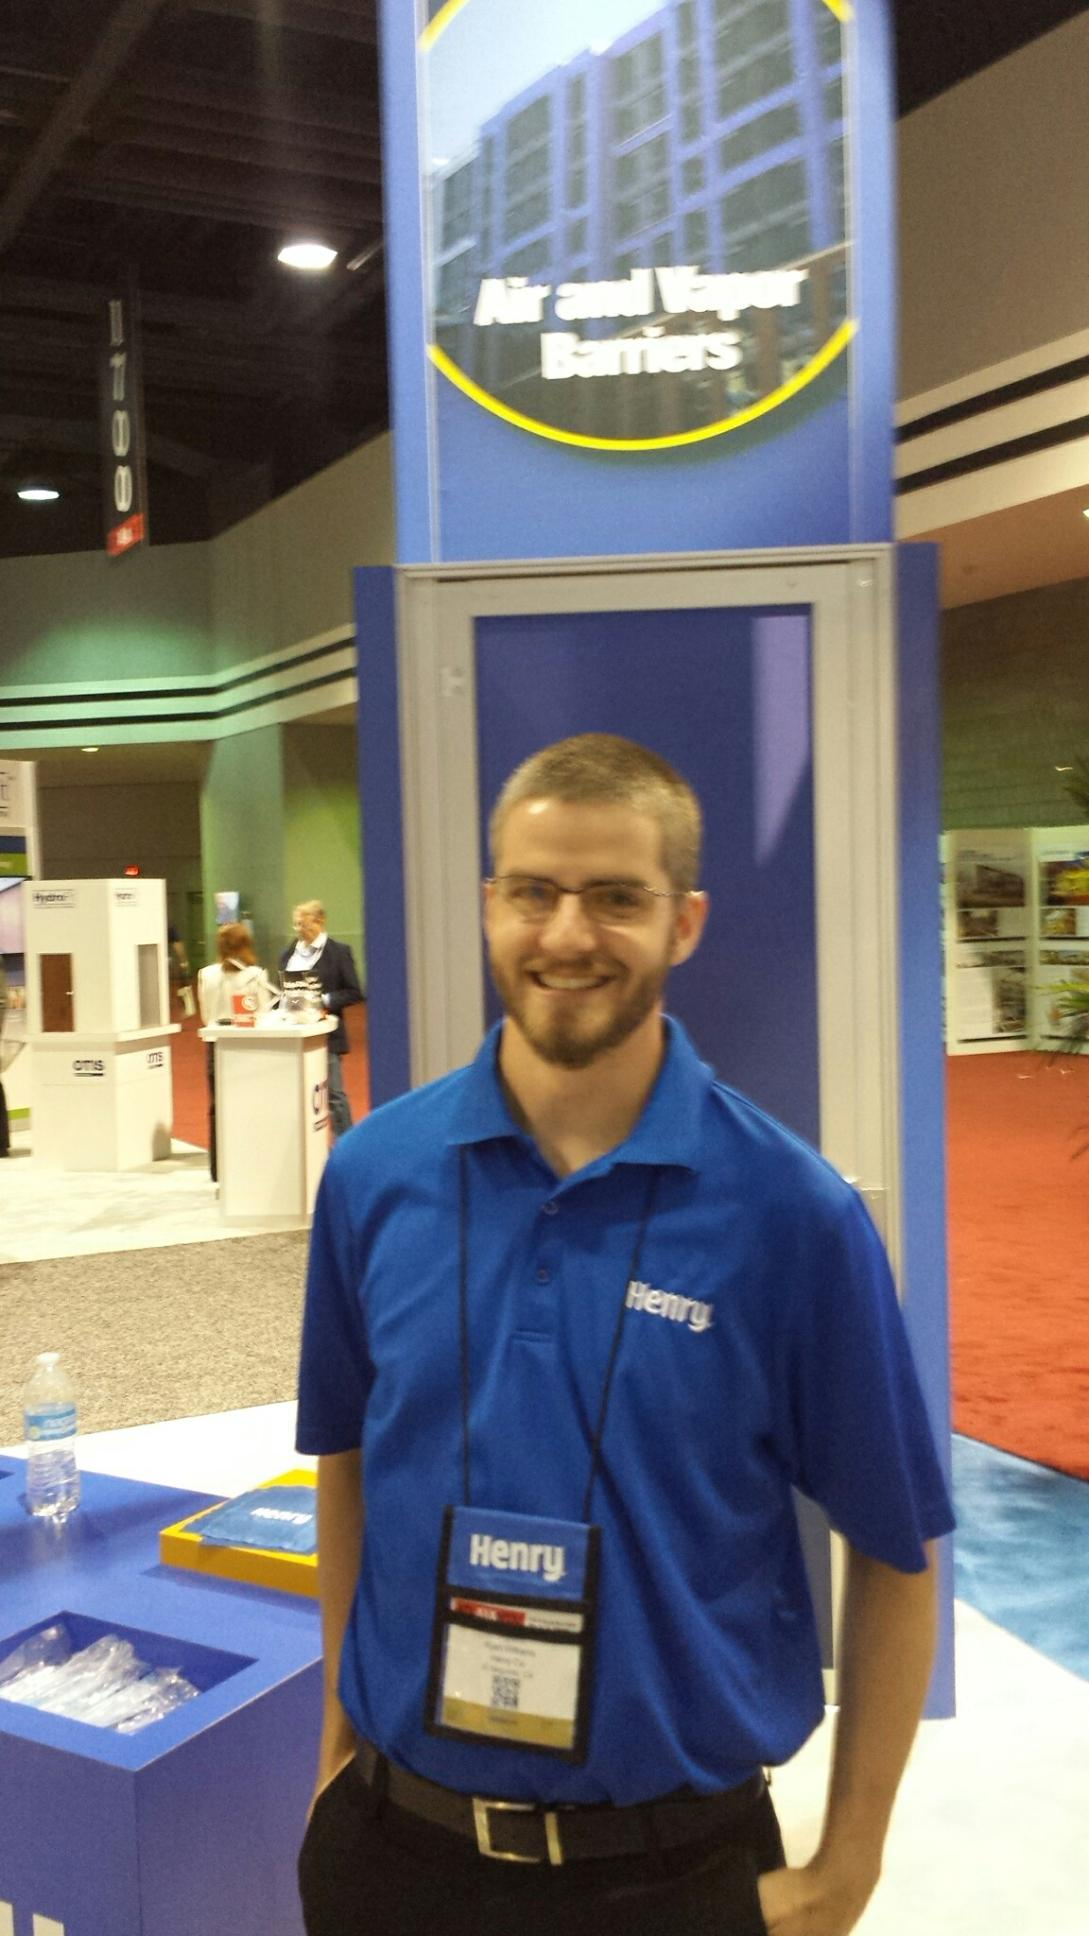 Henry Booth at AIA Convention 2015